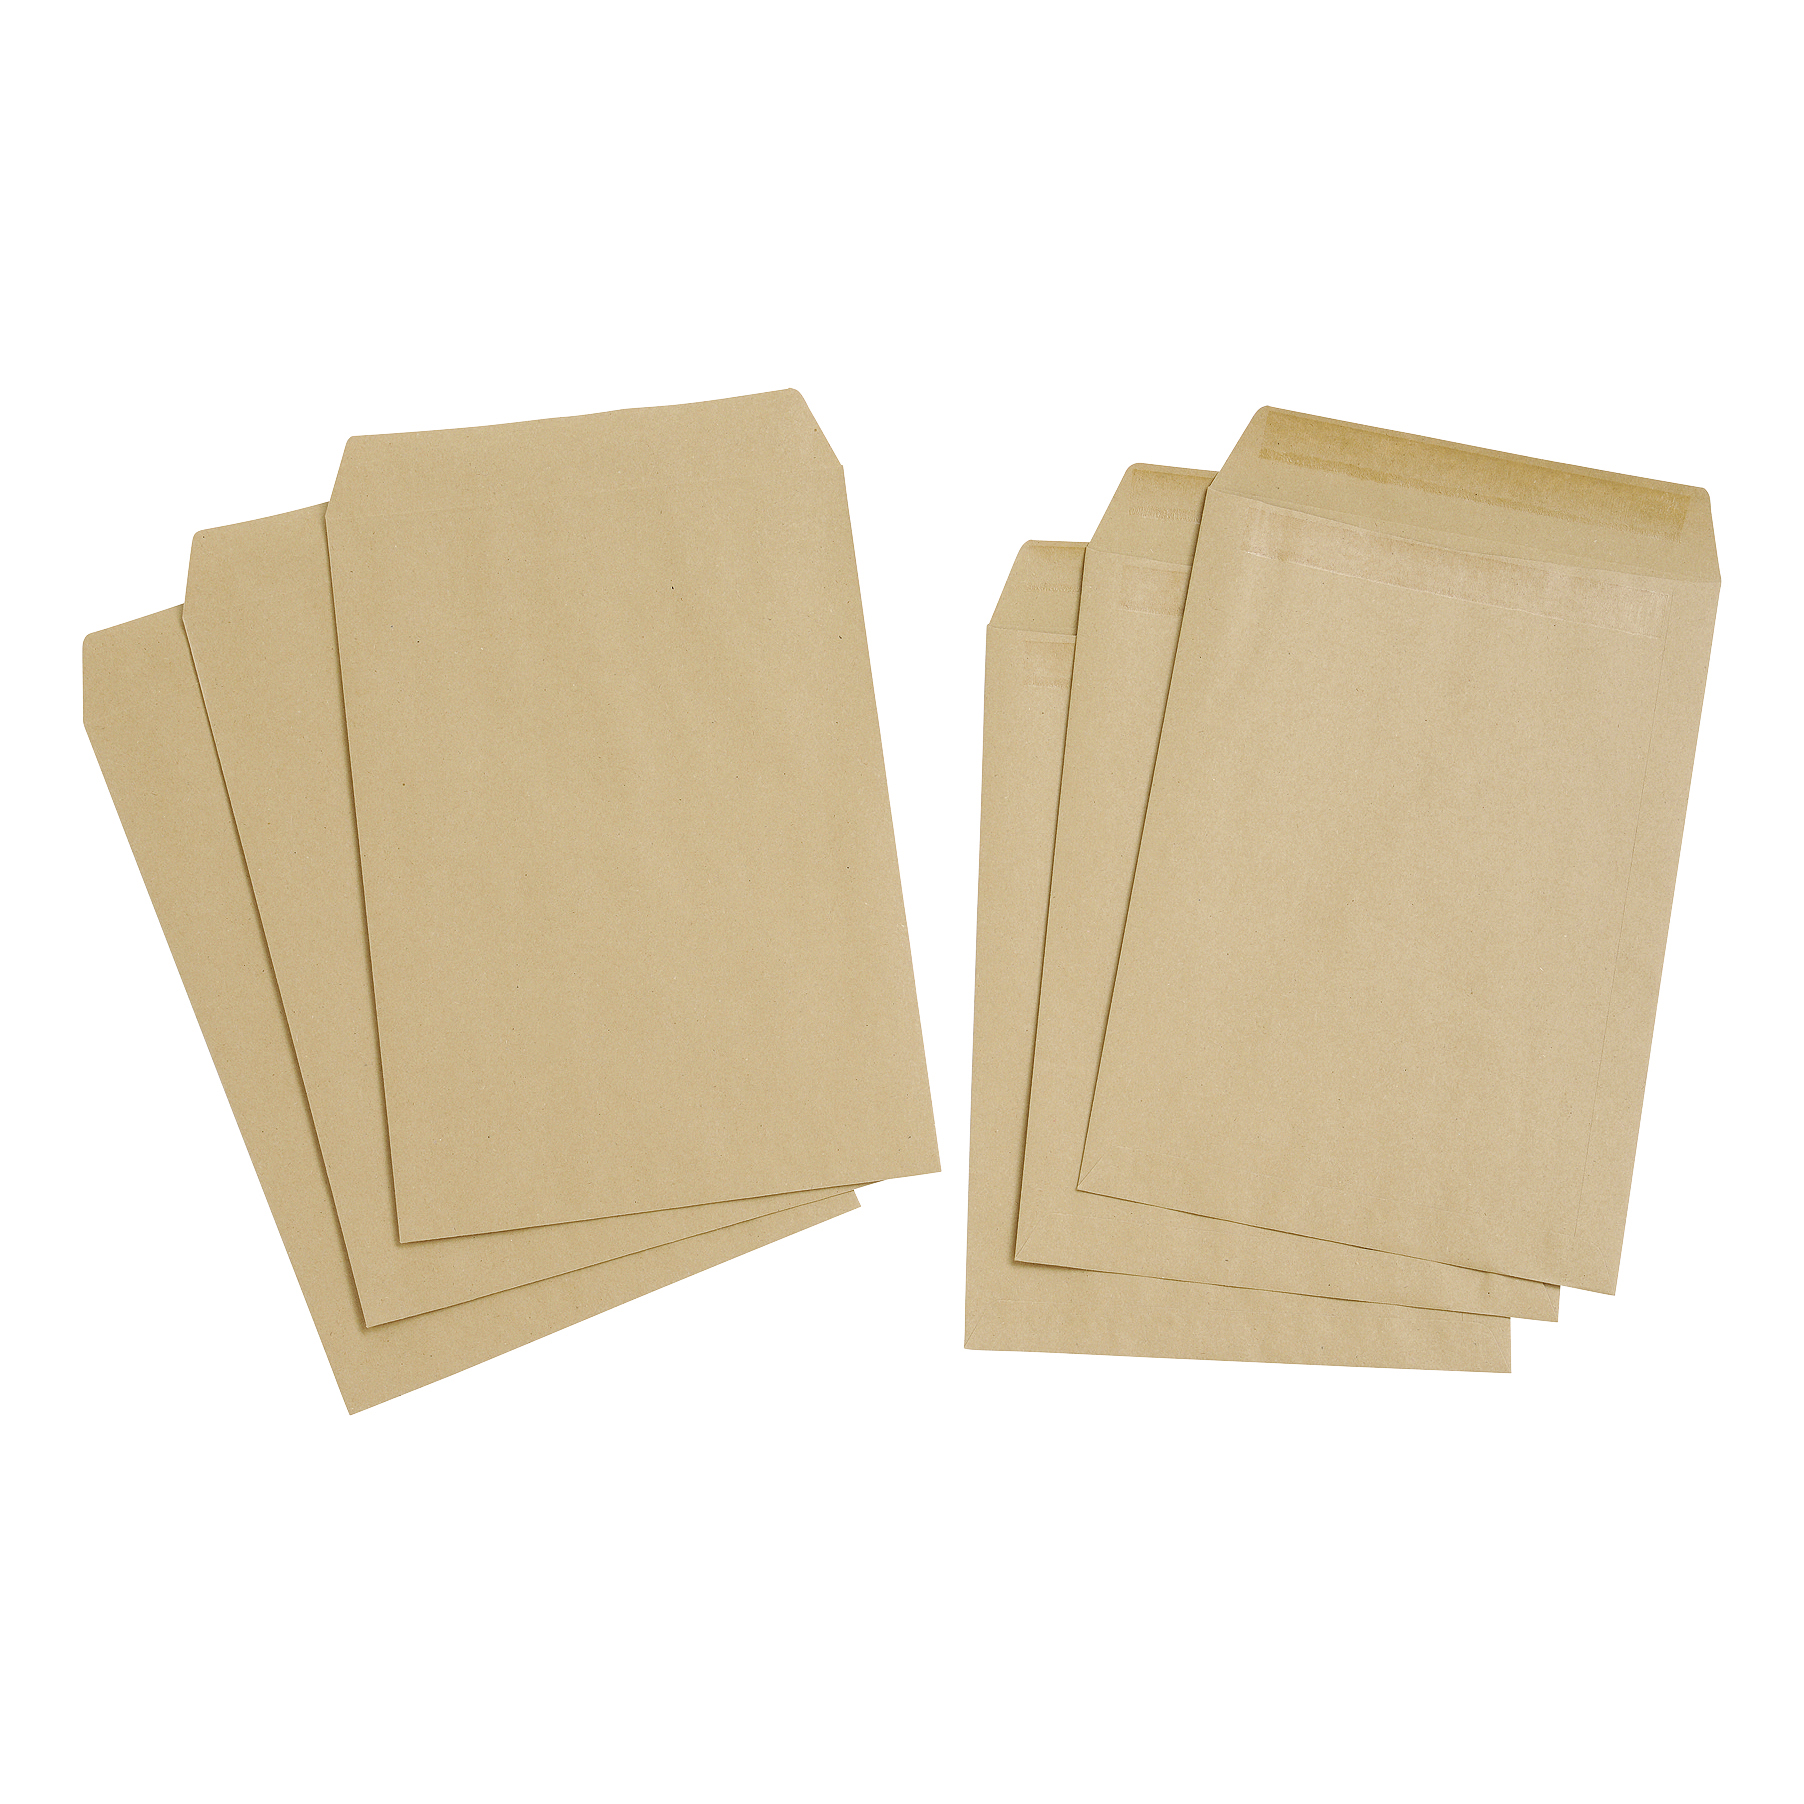 5 Star Value Envelope C4 Pocket Self Seal 80gsm Plain Manilla Pack 250